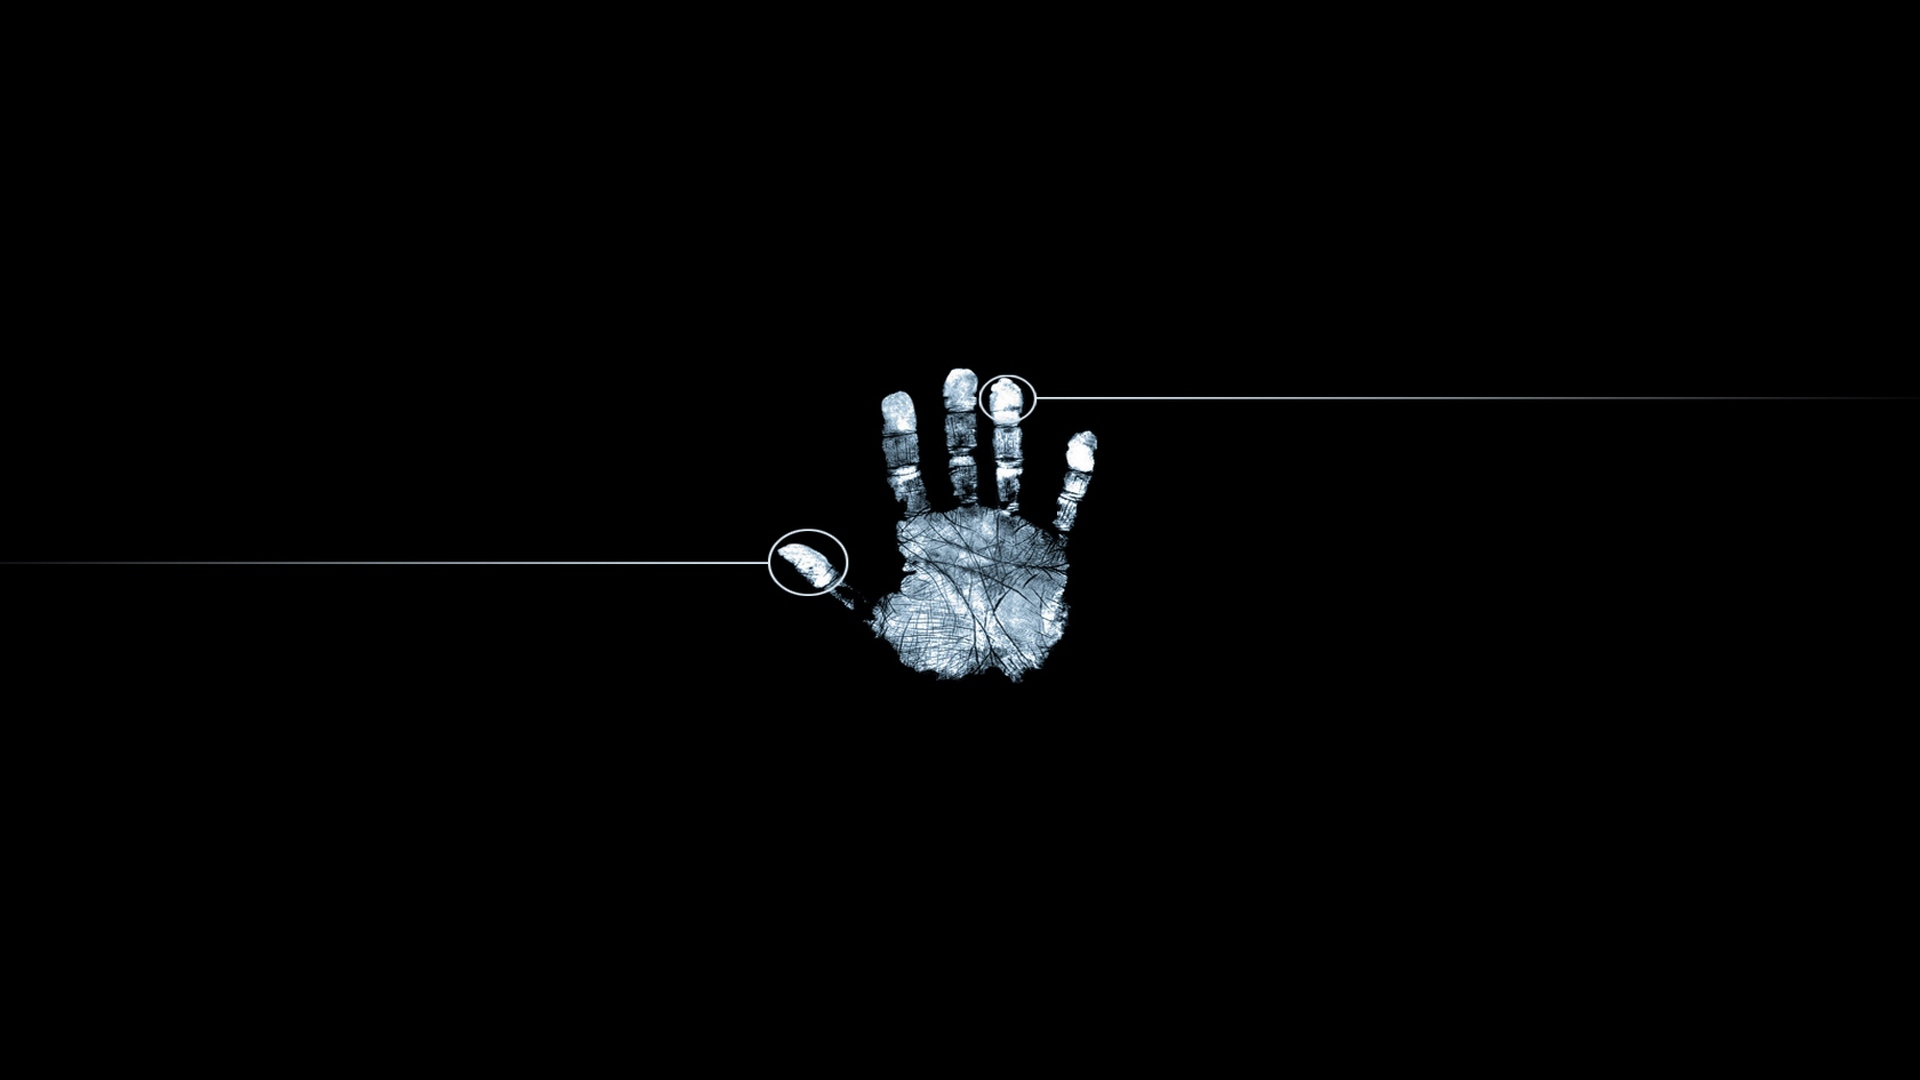 Download wallpaper 1920x1080 fingerprint hand black for Wallpaper used in your home in their hands